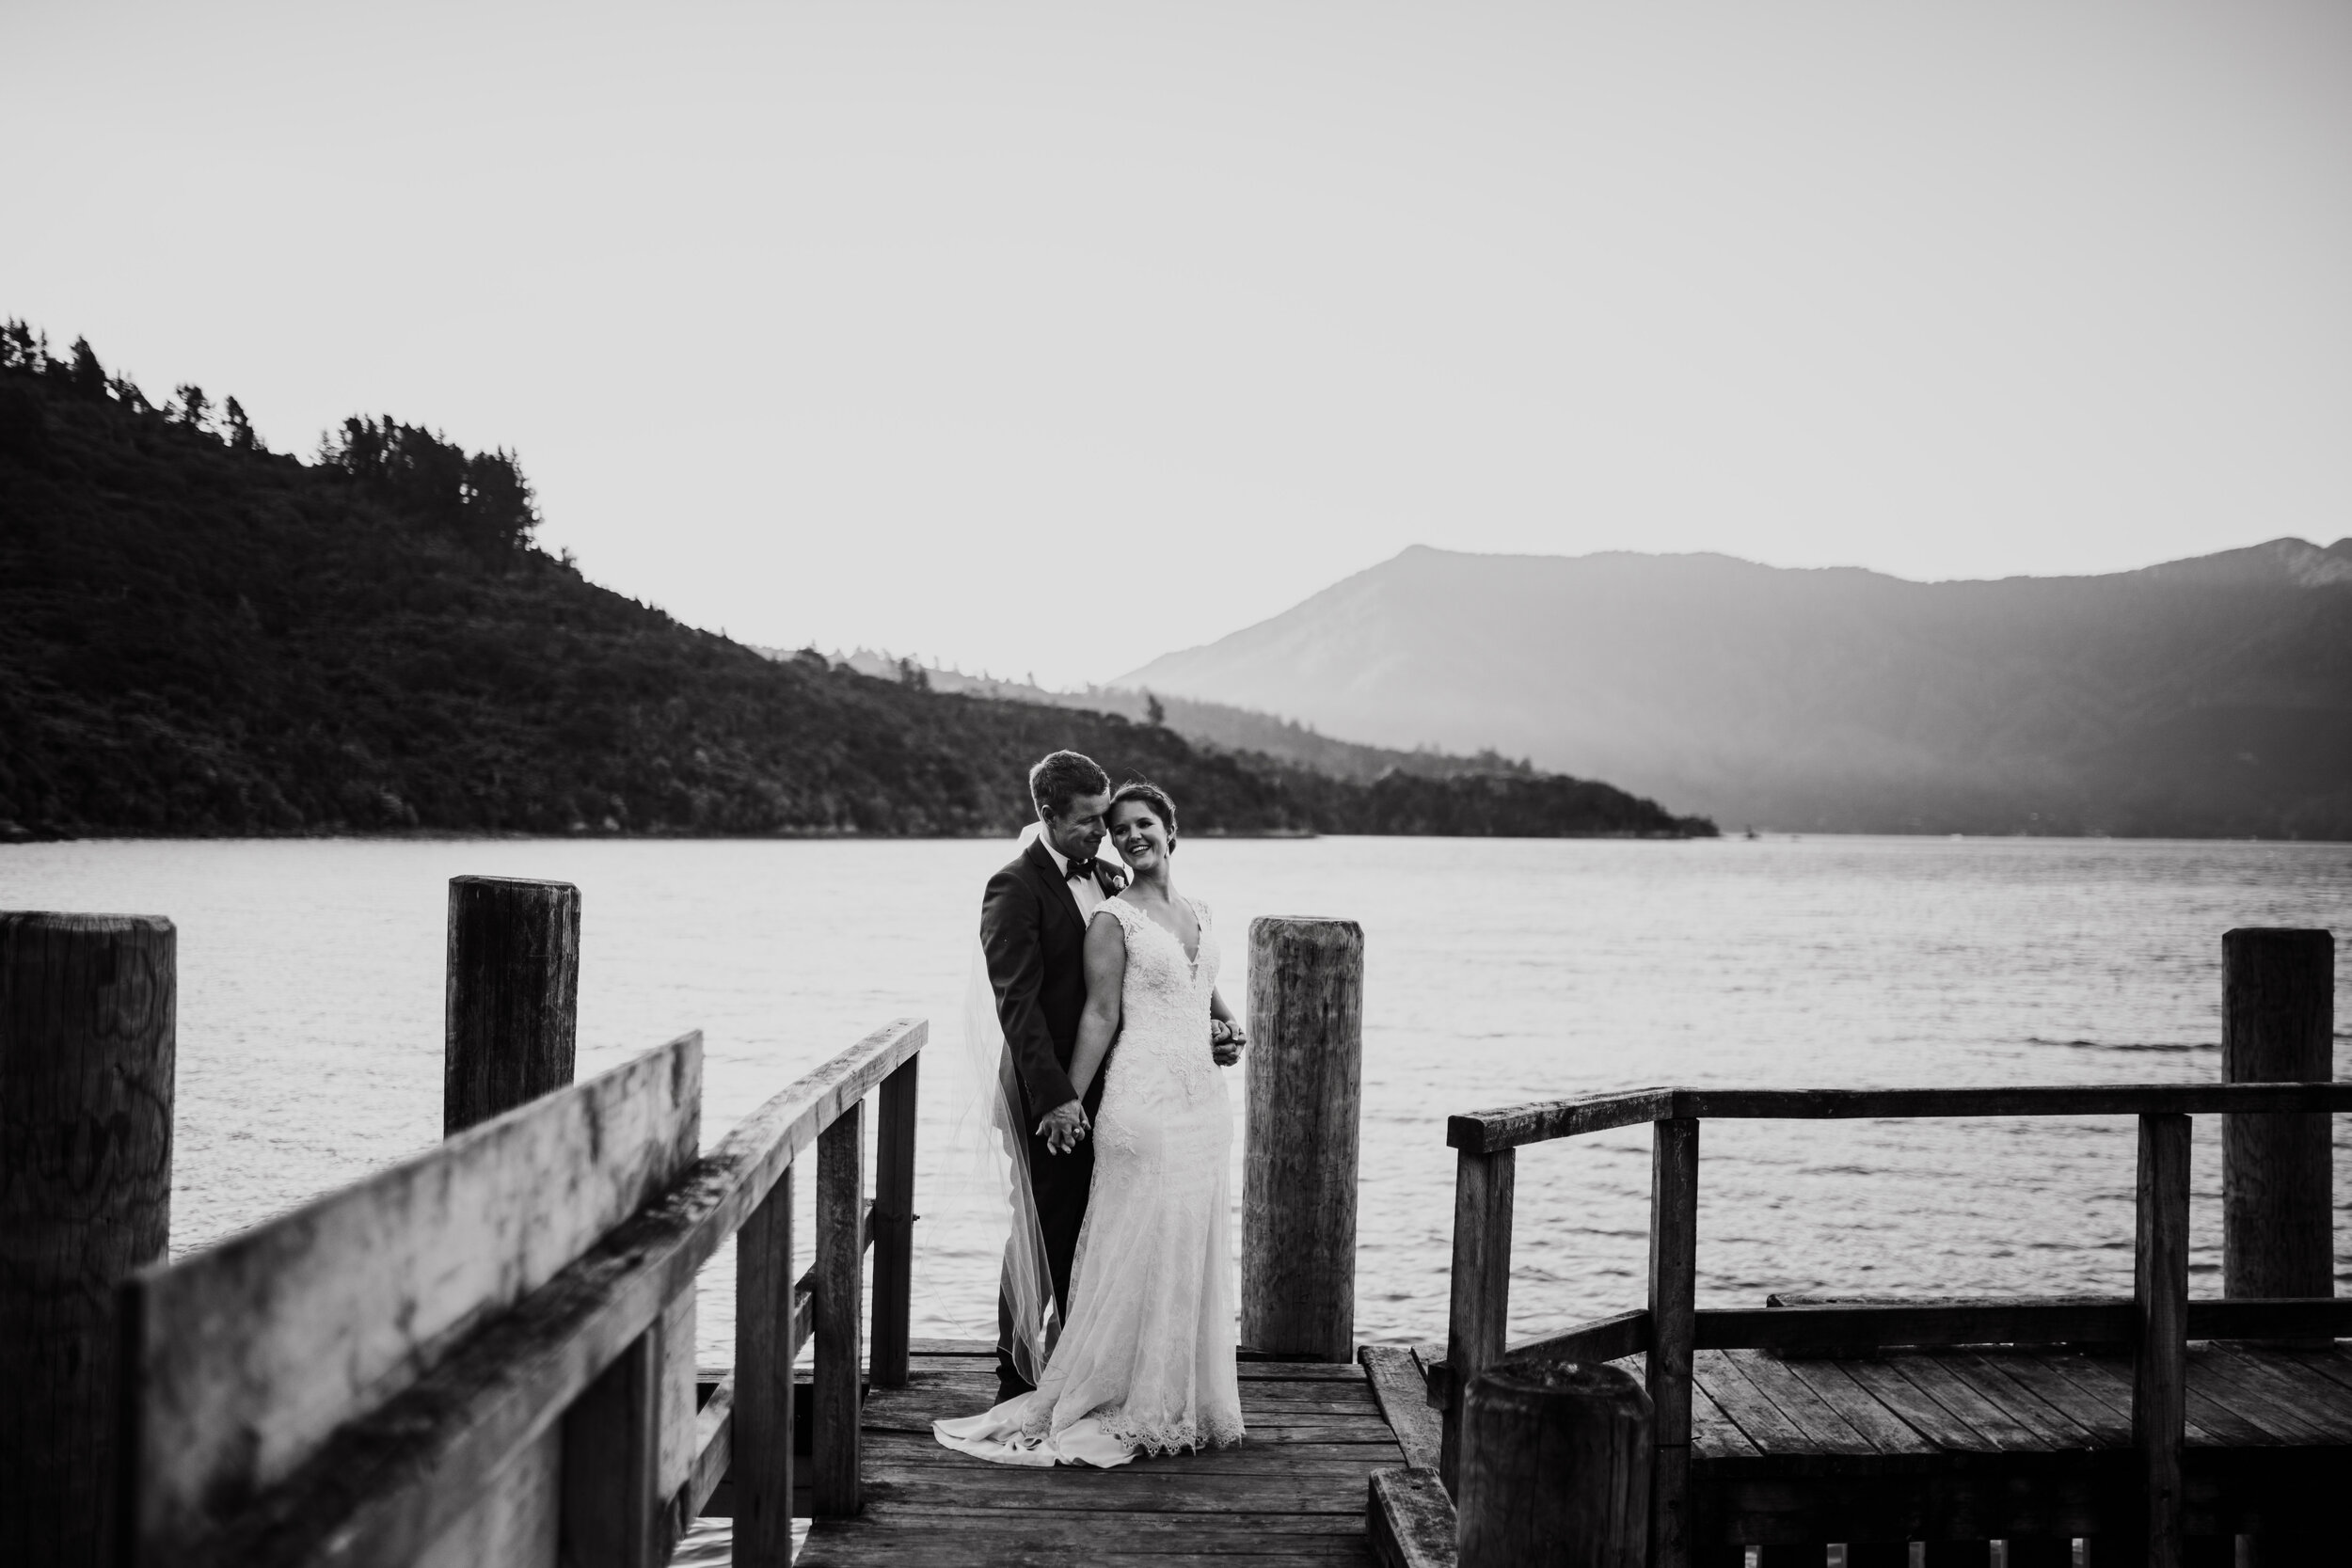 H&RWeddingMonochrome-701.jpg